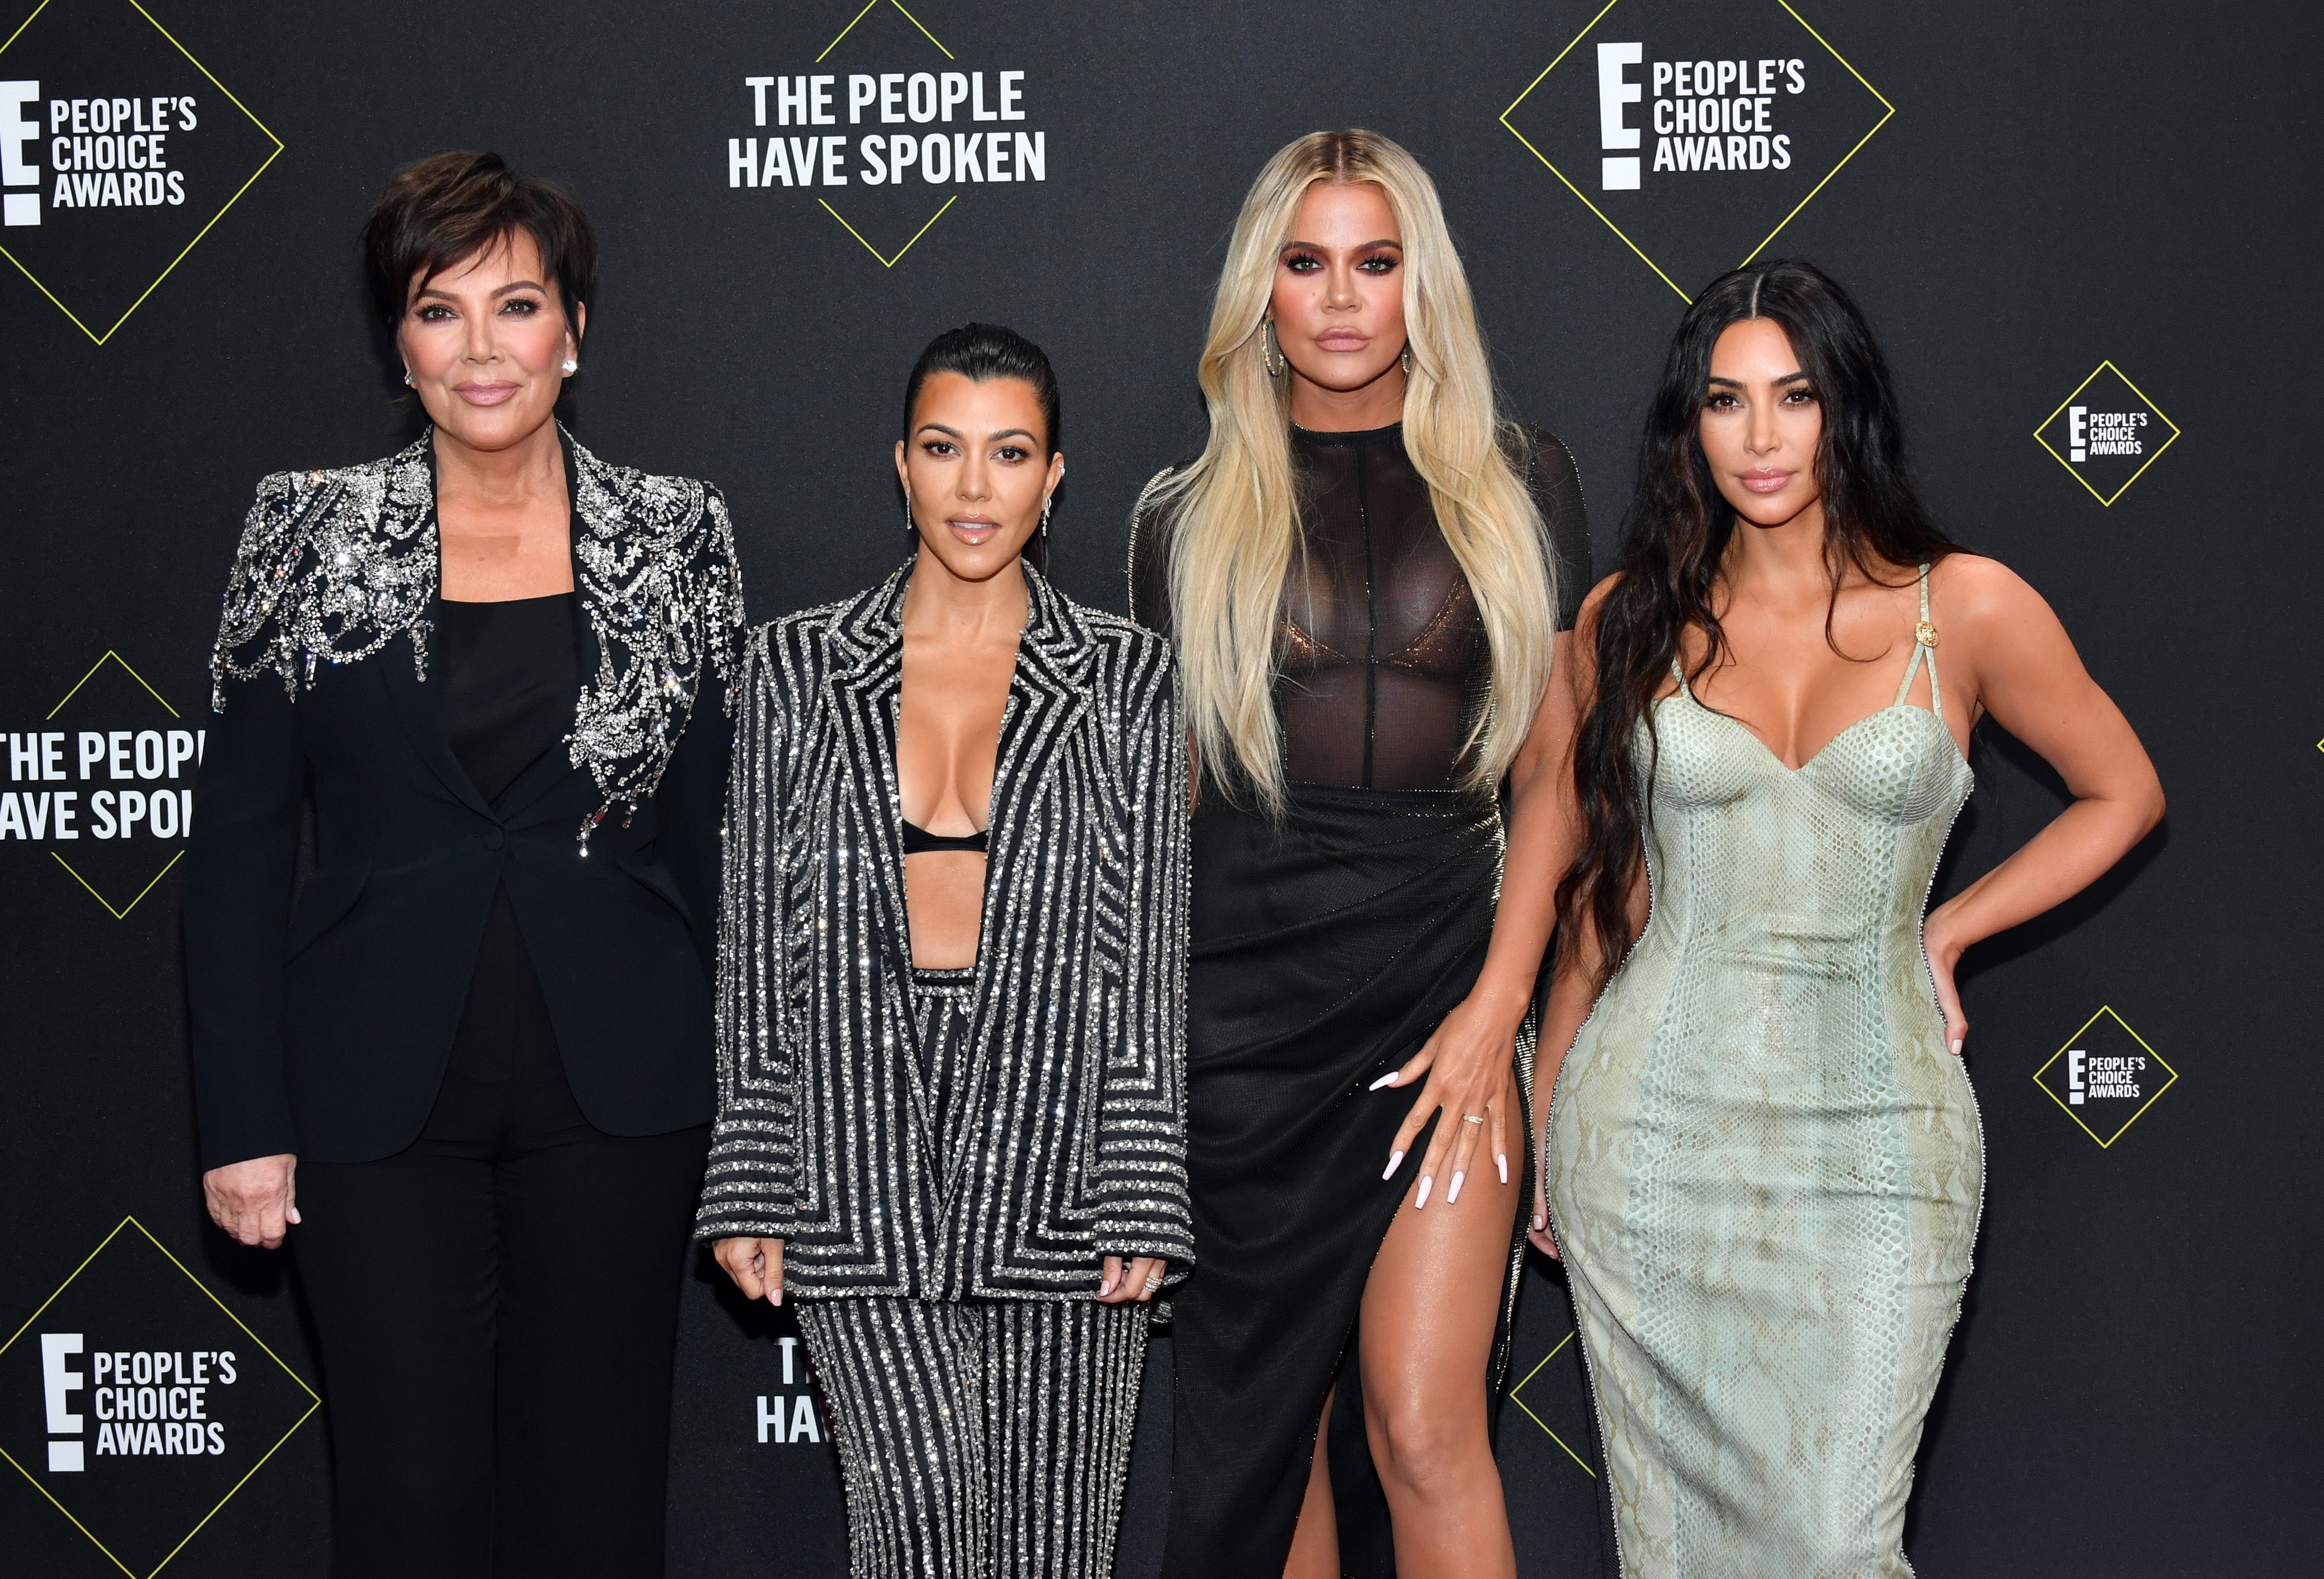 Kris Jenner, Kourtney Kardashian, Khloé Kardashian a Kim Kardashian West na E! People's Choice Awards 2019 Autor: Amy Sussman/E! Entertainment/NBCU Photo Bank